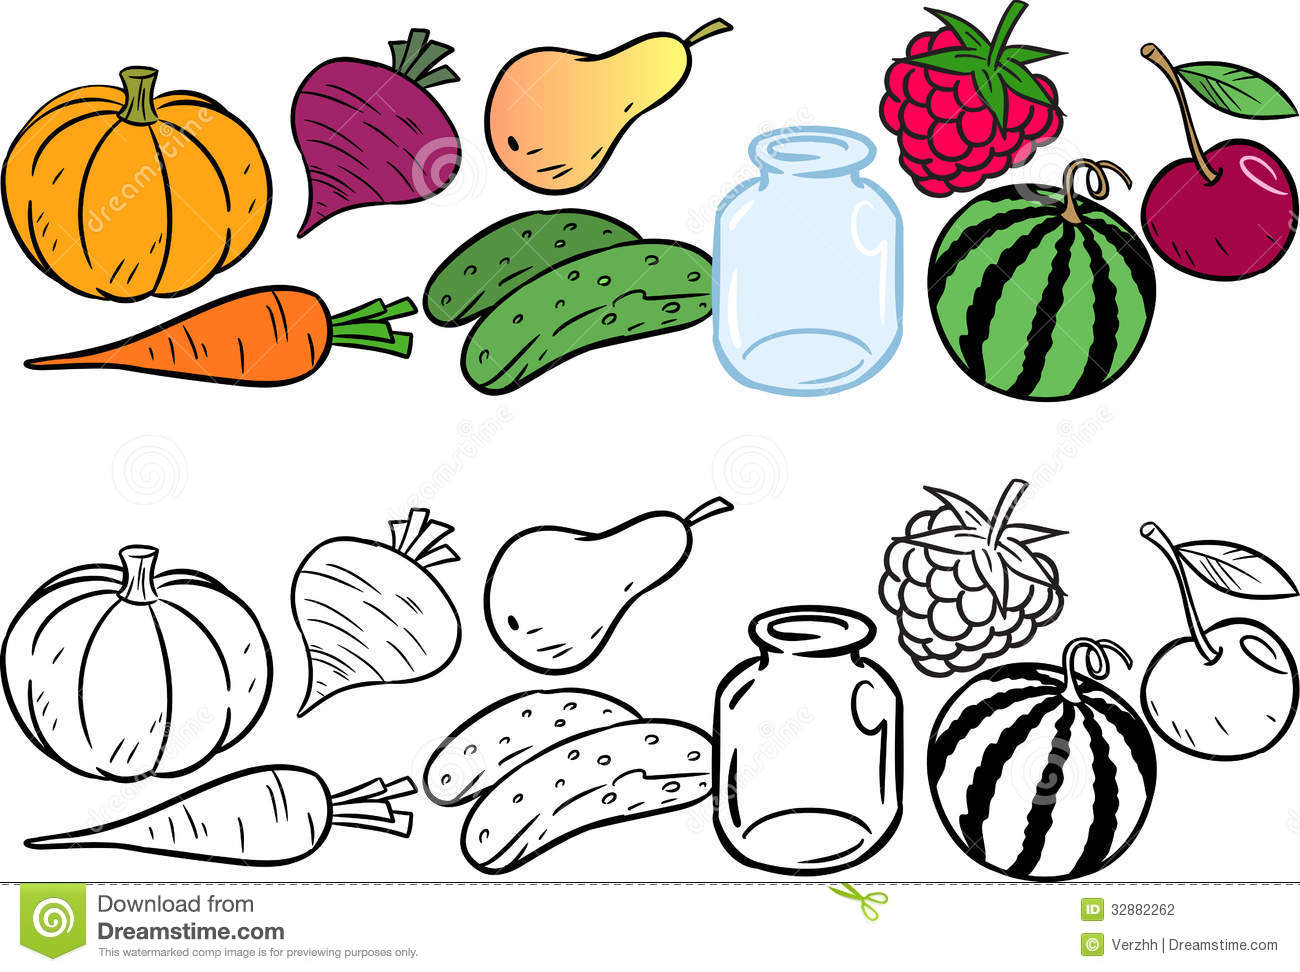 Royalty Free Stock Photo Download Coloring With Vegetables And Fruits